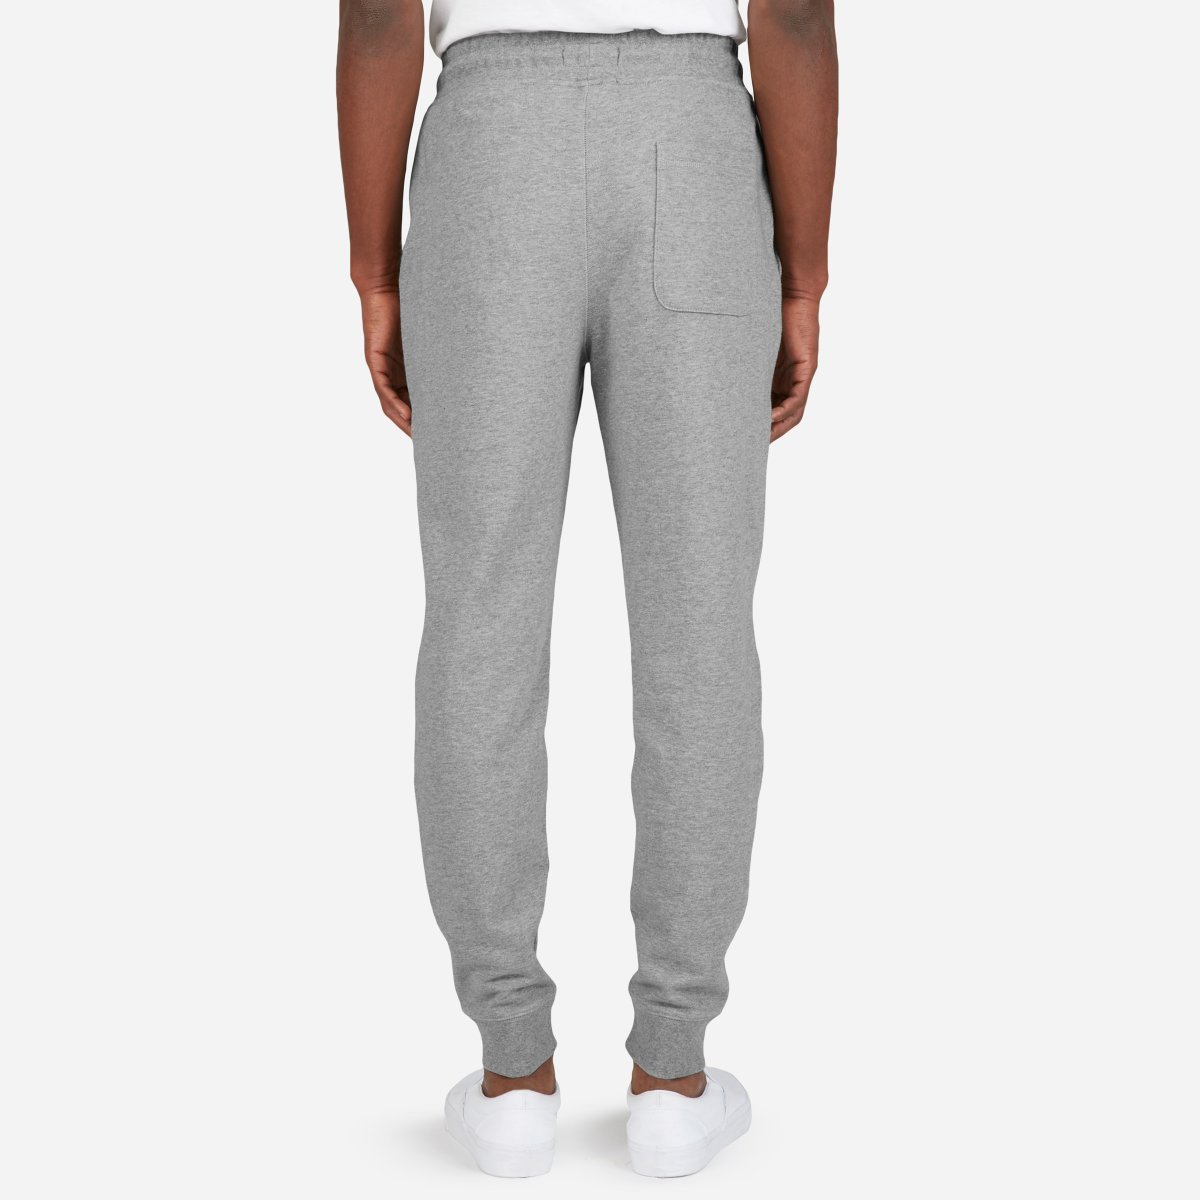 d85a03b5762a Your browser does not support HTML5 video. Here is the link to the video M french  Terry pant heather grey.